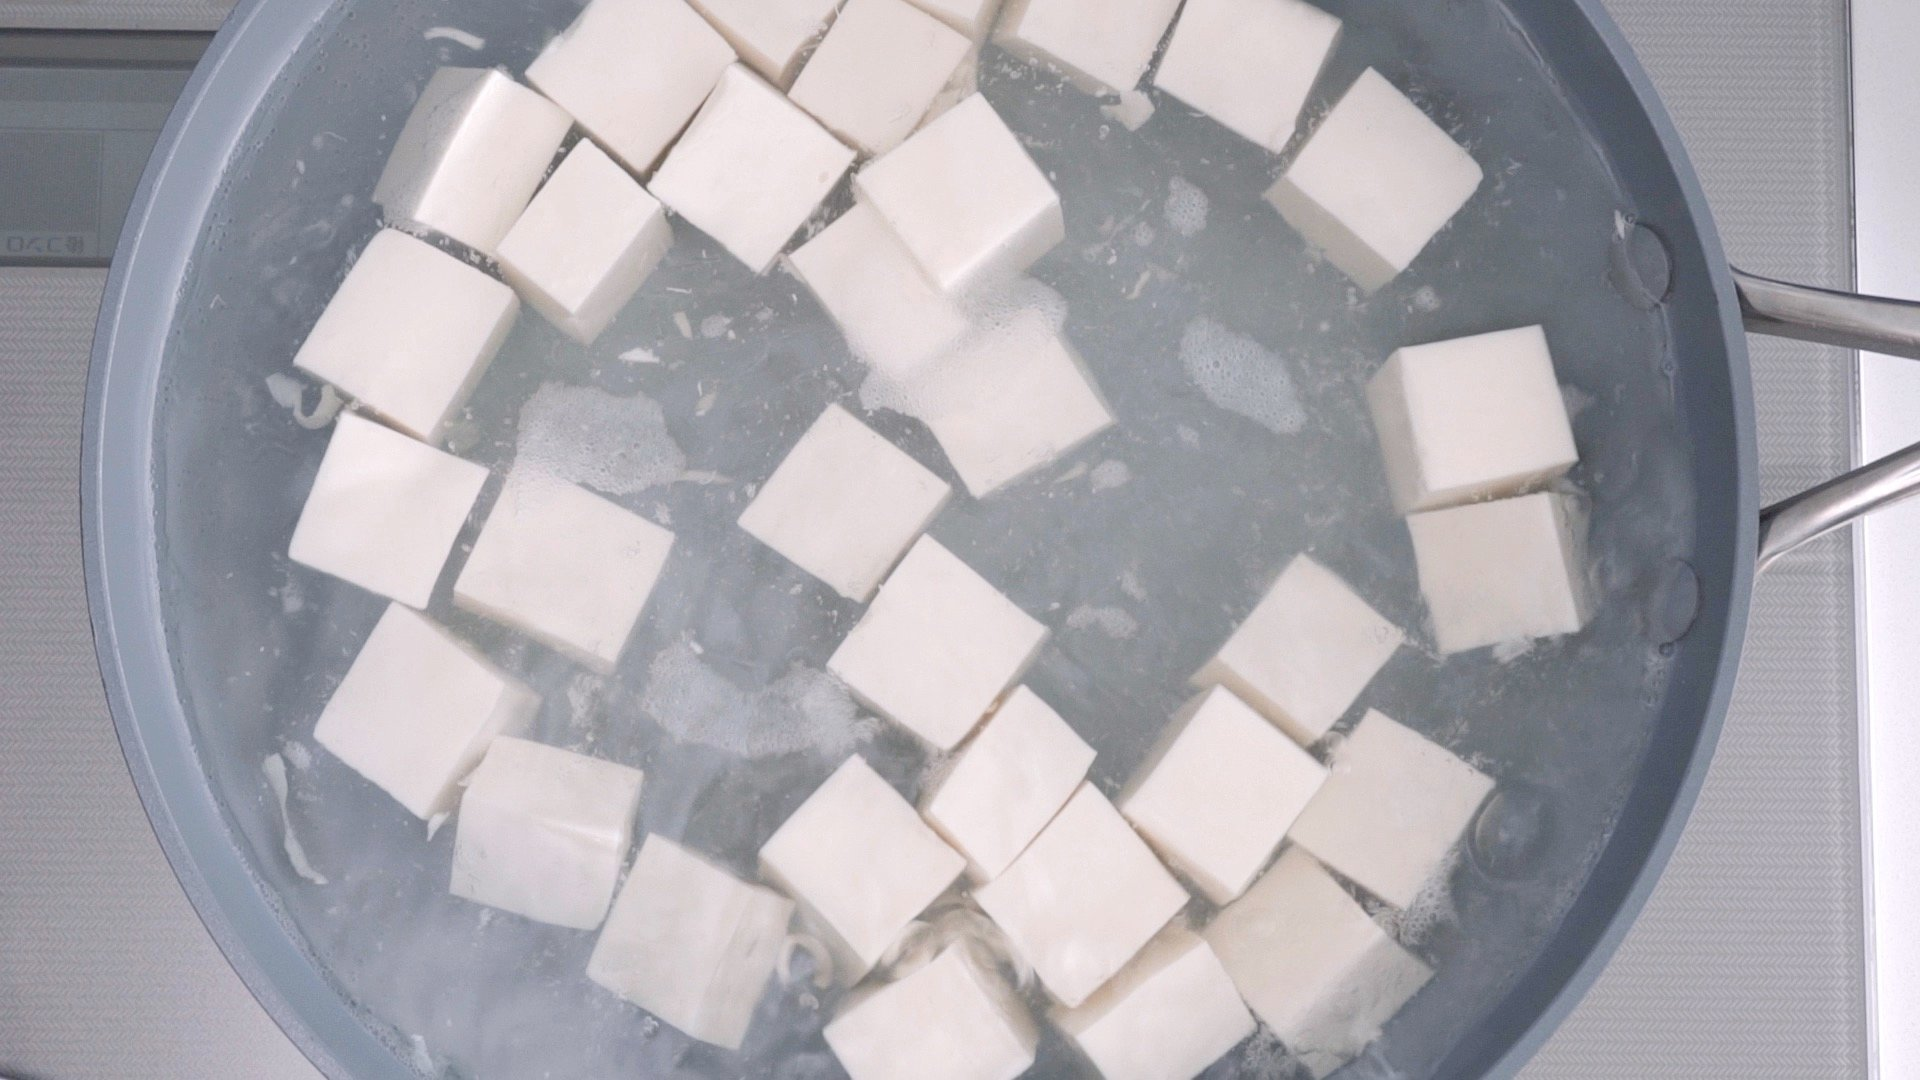 Blanche the tofu in salted water to remove any excess water.